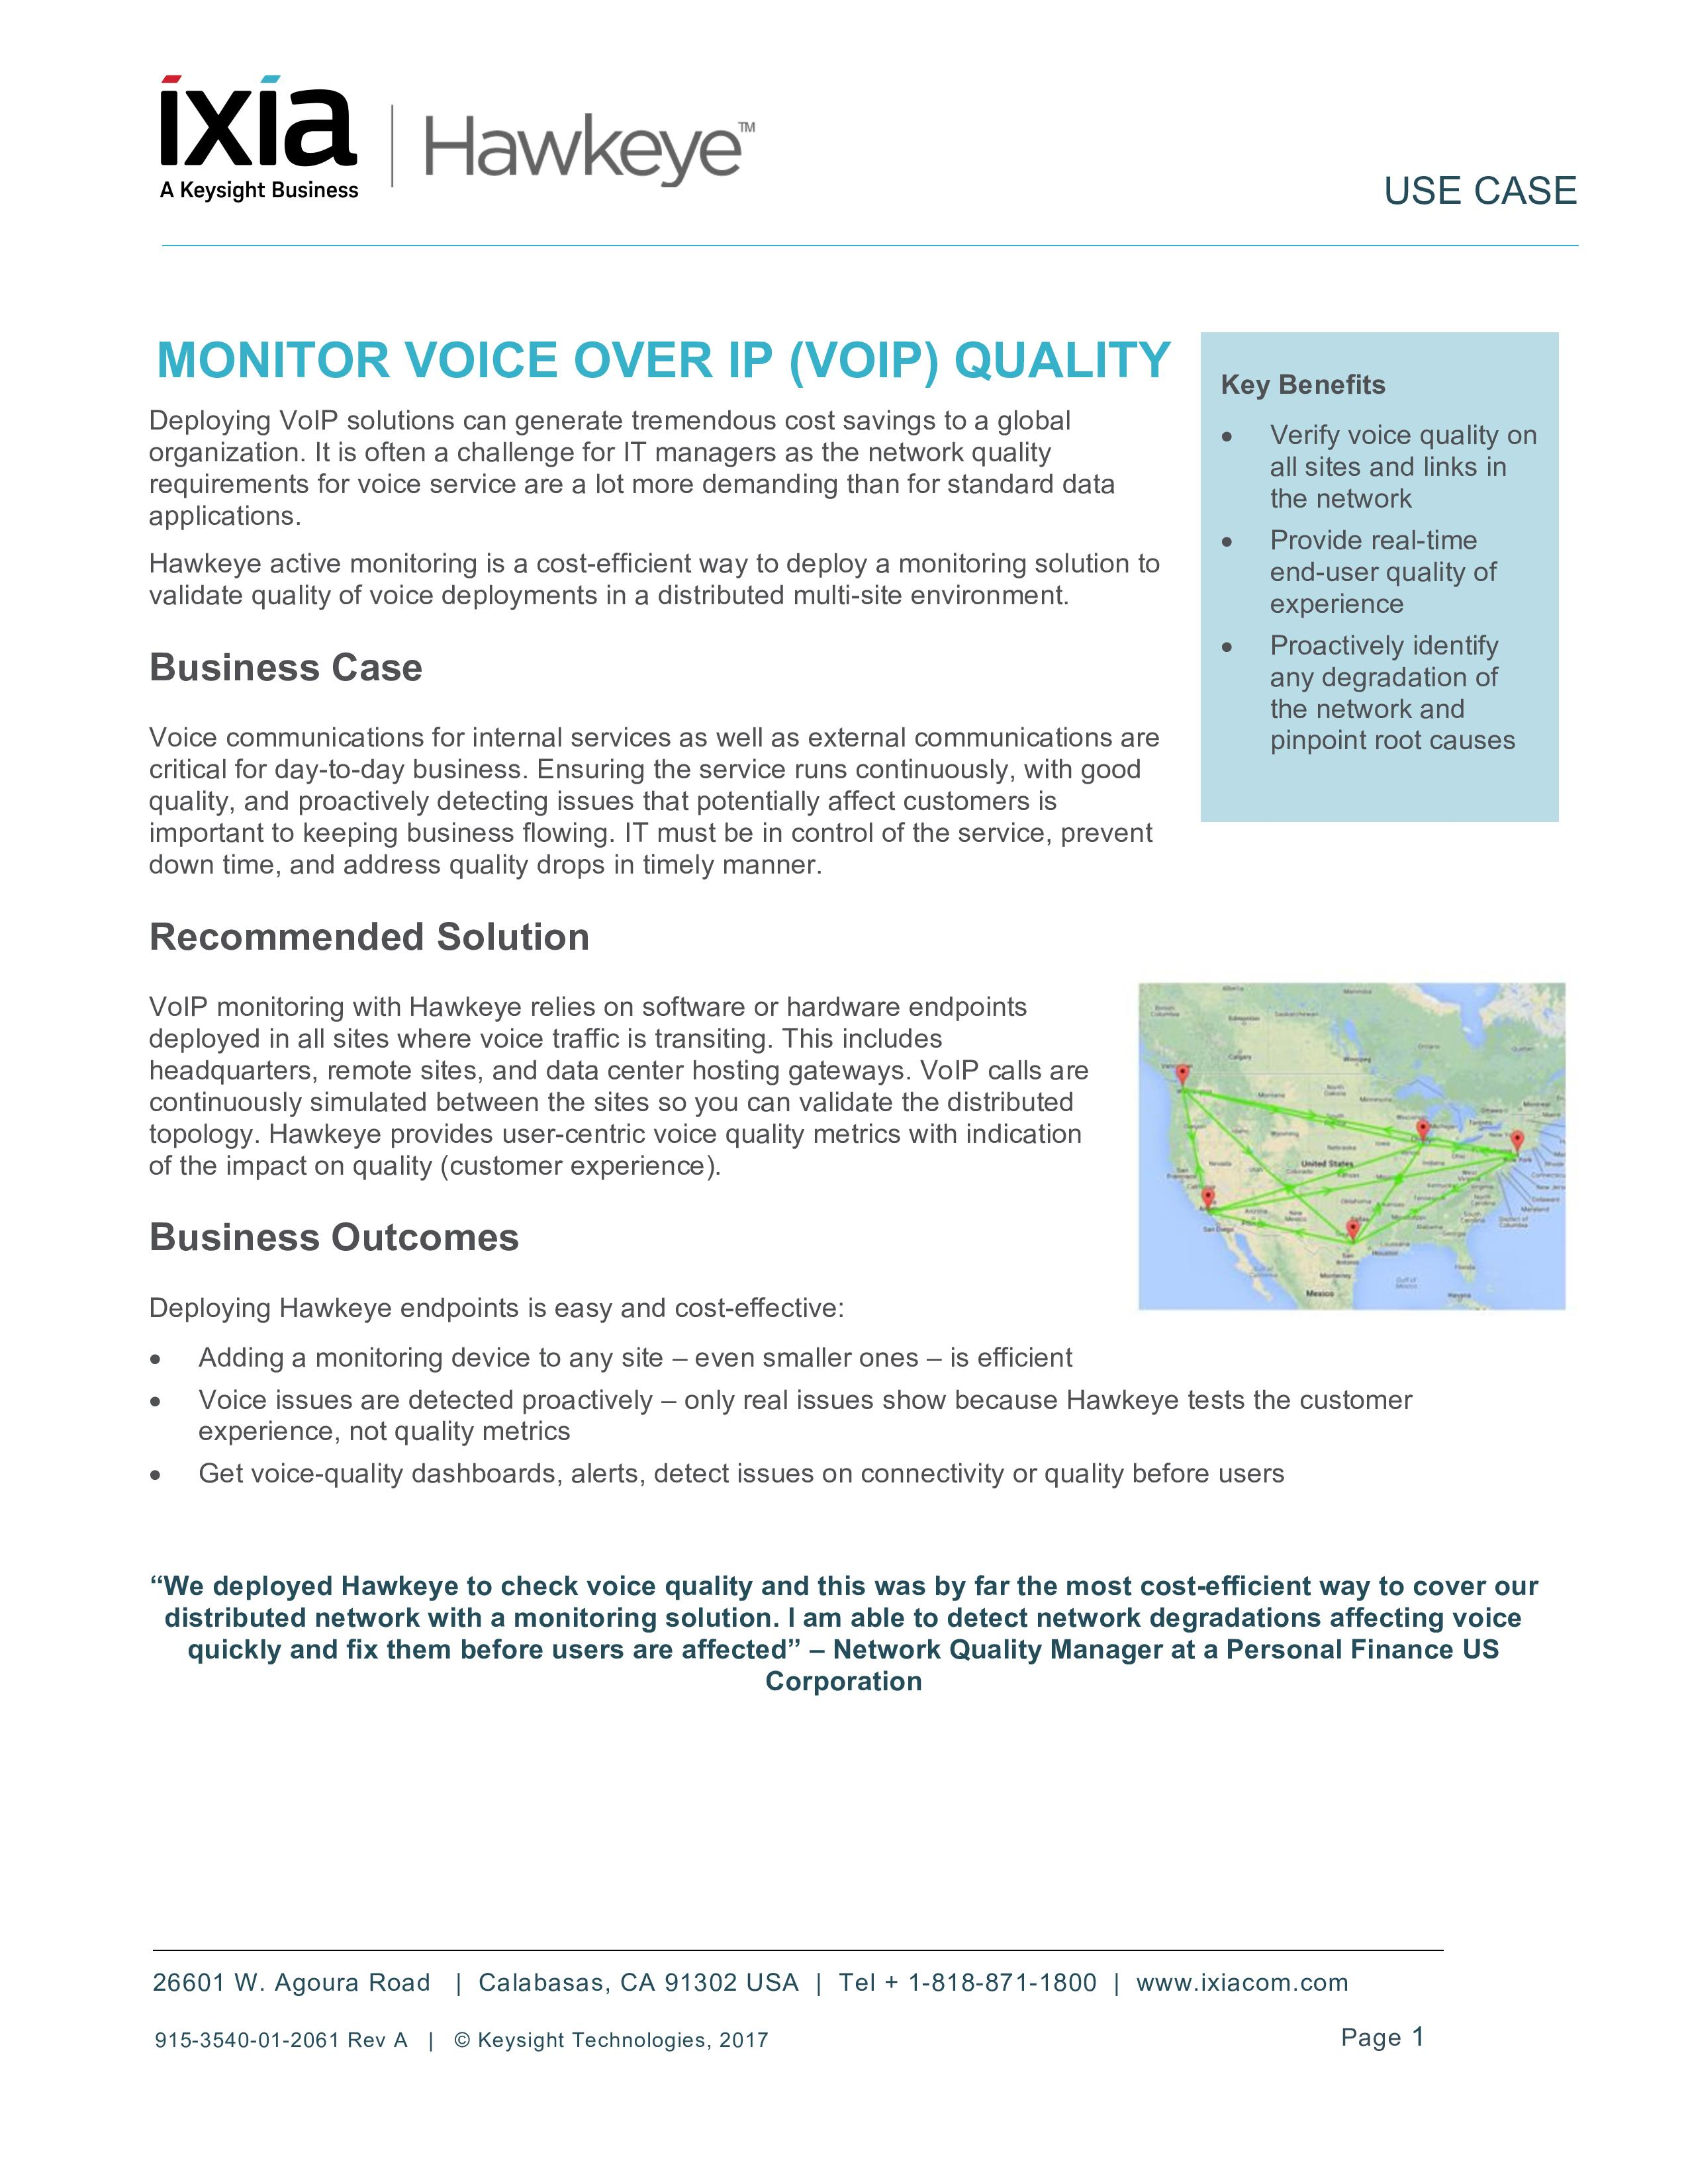 Hawkeye - Monitor Voice over IP (VoIP) Quality - Redwood